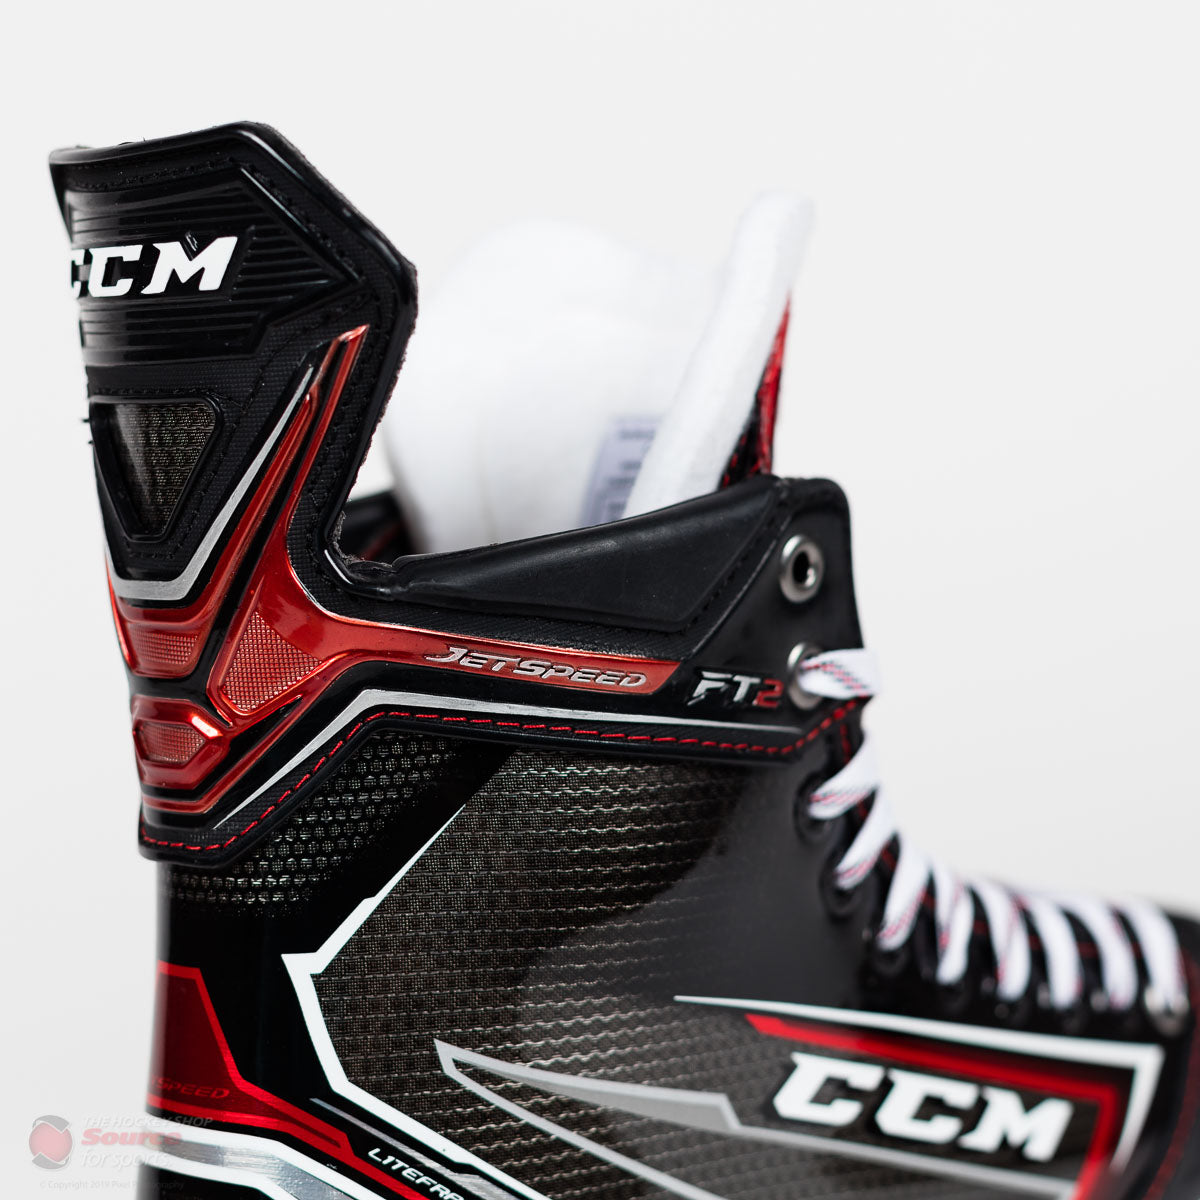 2019 CCM Jetspeed FT2 Skates Review